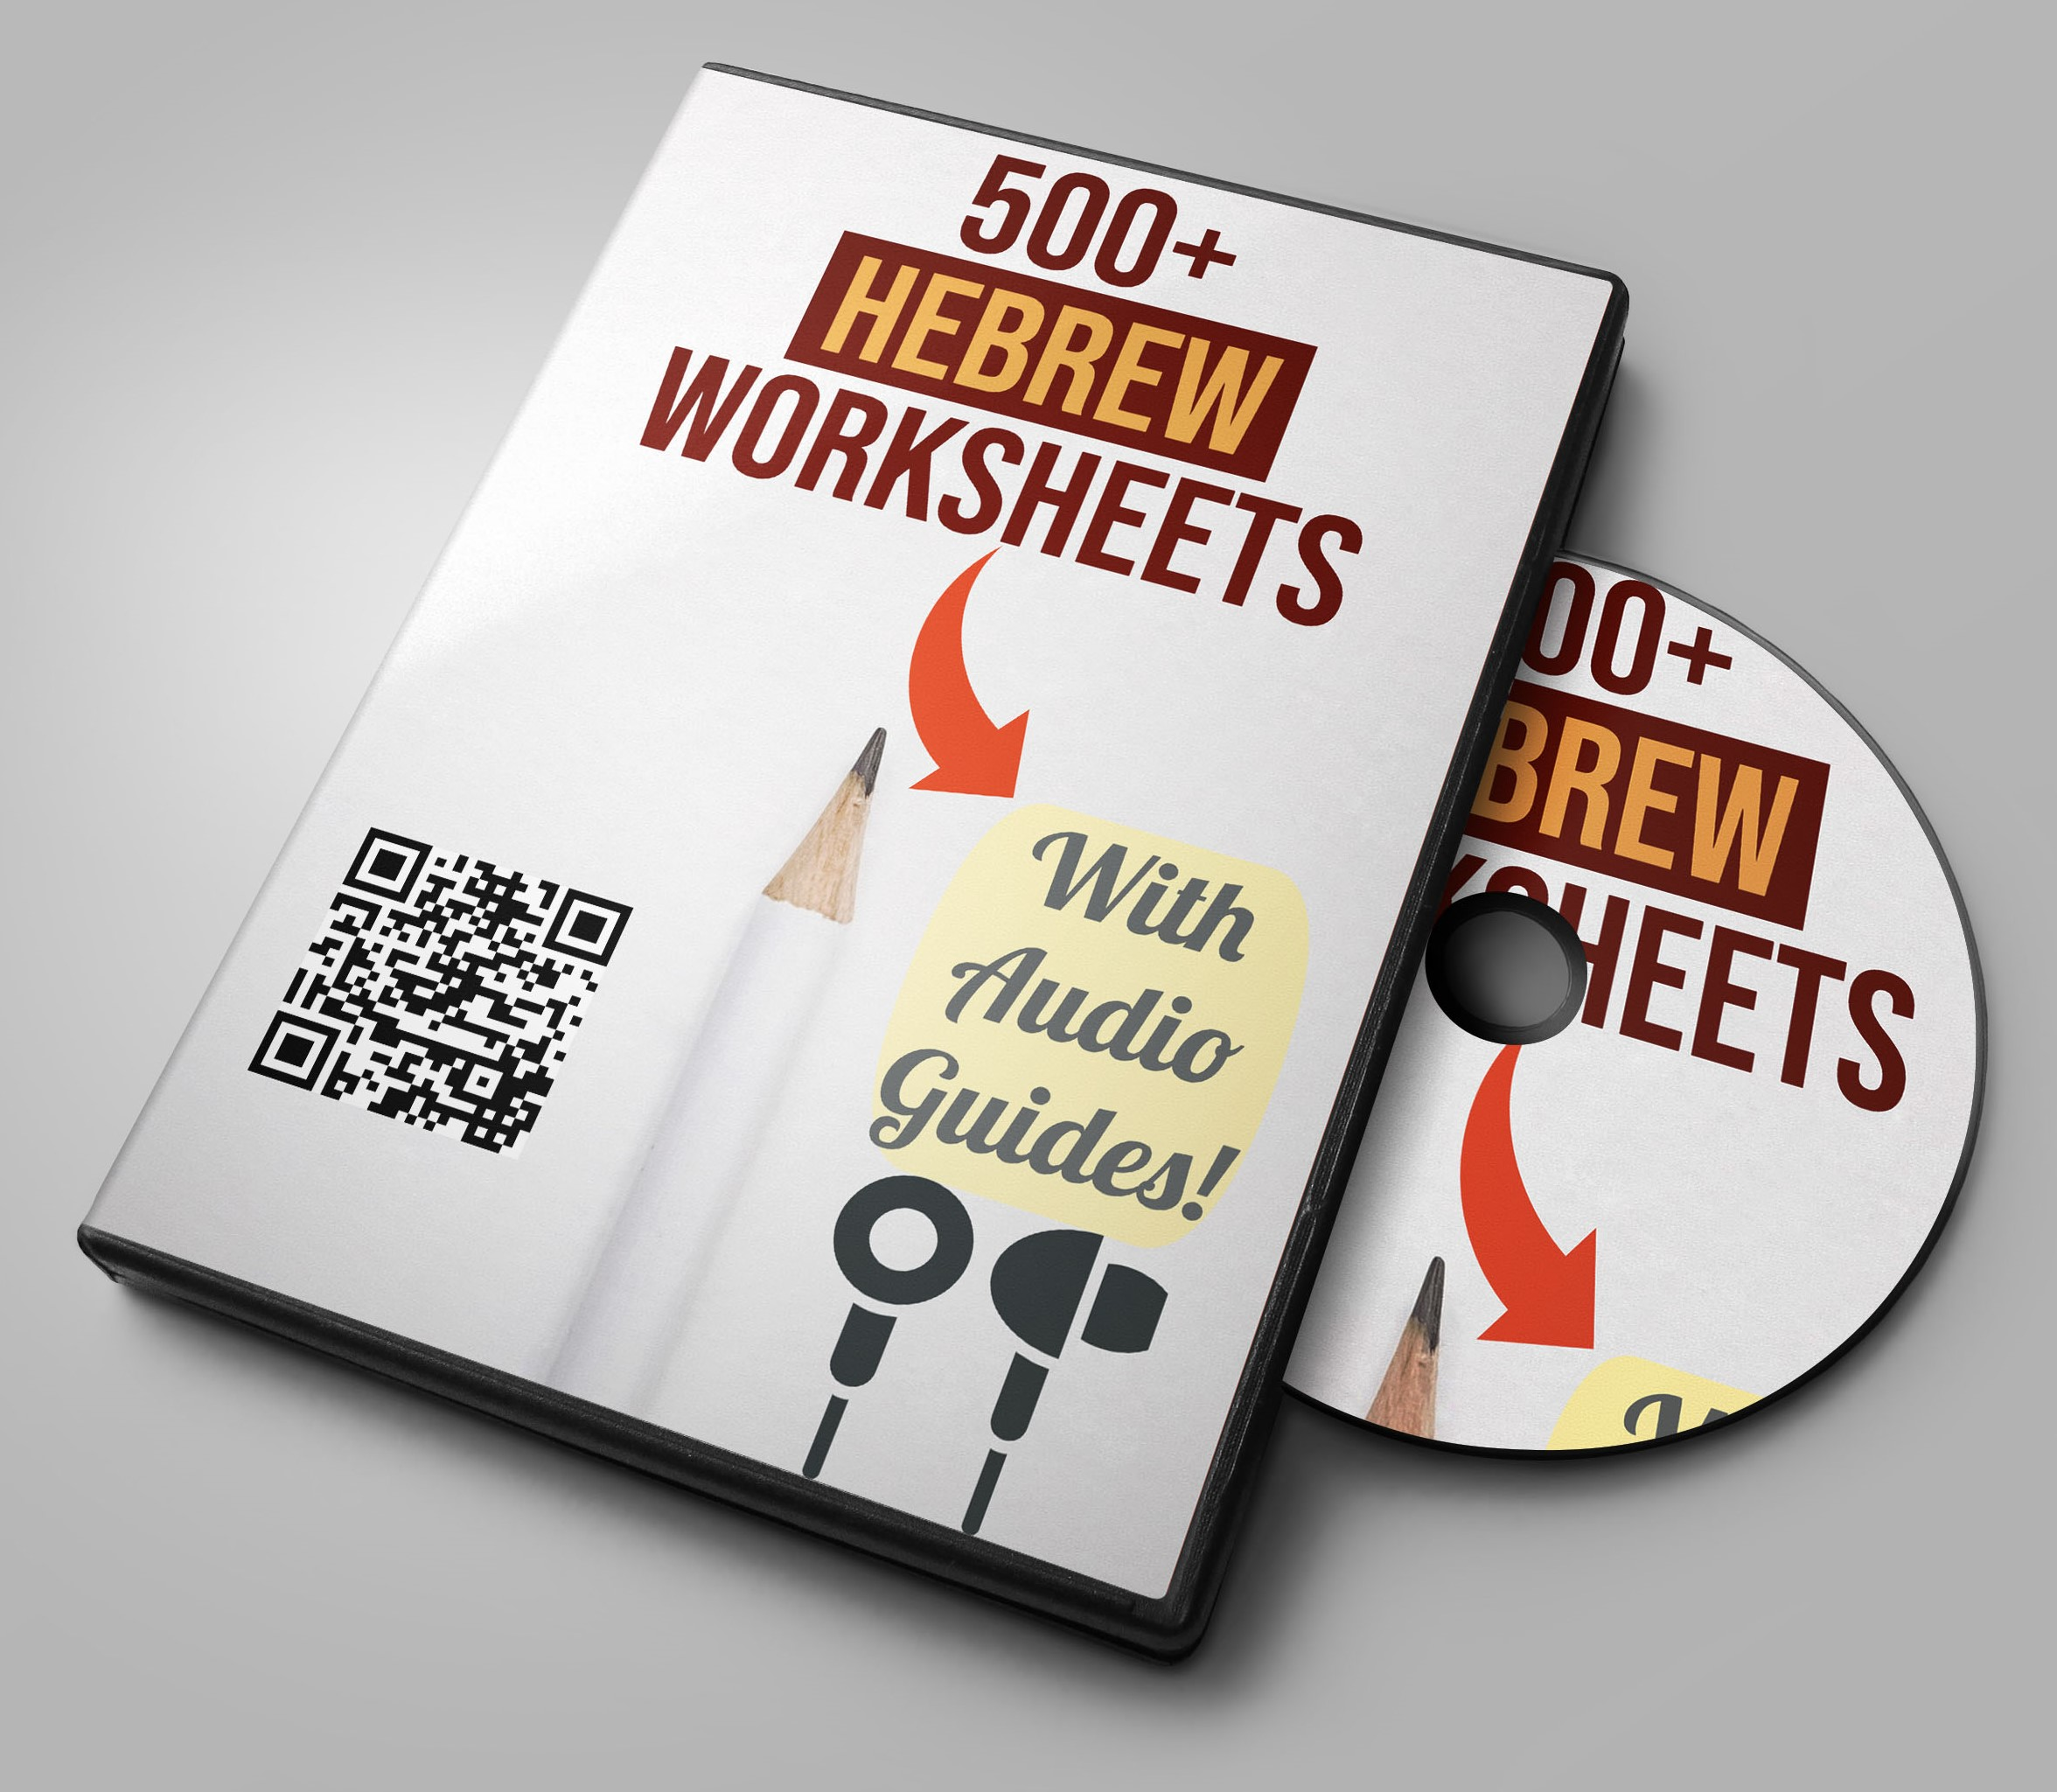 500 Hebrew Worksheets Audio Guides